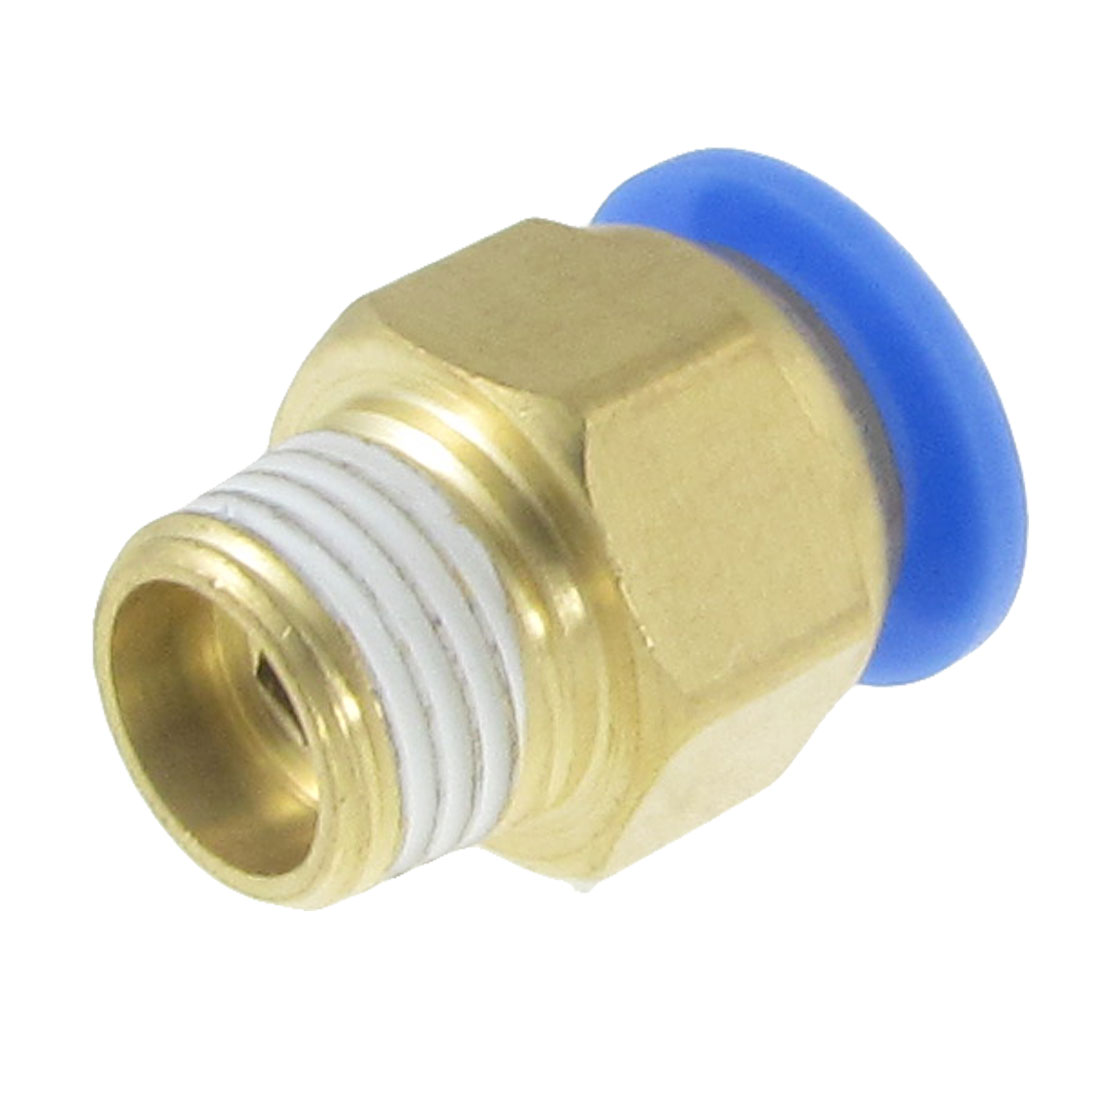 Pneumatic Air Tubing Push in 12mm Male Thread Connect Quick Fittings